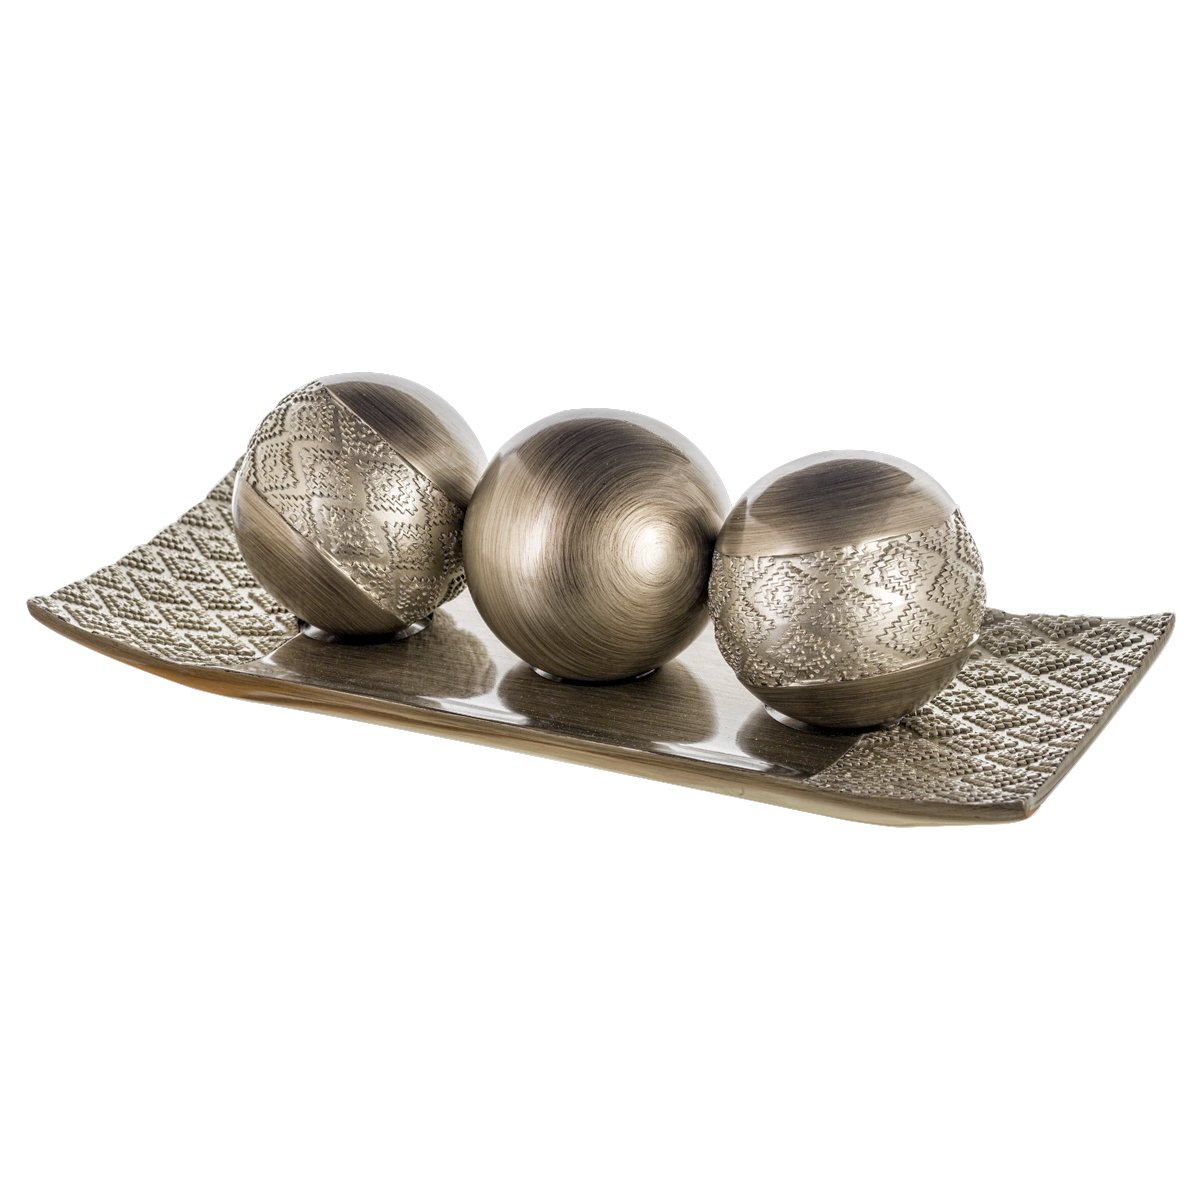 Dublin Decorative Tray and Orbs/Balls Set of 3, Centerpiece Bowl with Balls decorations Matching, Rustic Decorated Spheres Kit for Living Room or Dining/Coffee Table, Gift Boxed (Brushed Silver) by Creative Scents